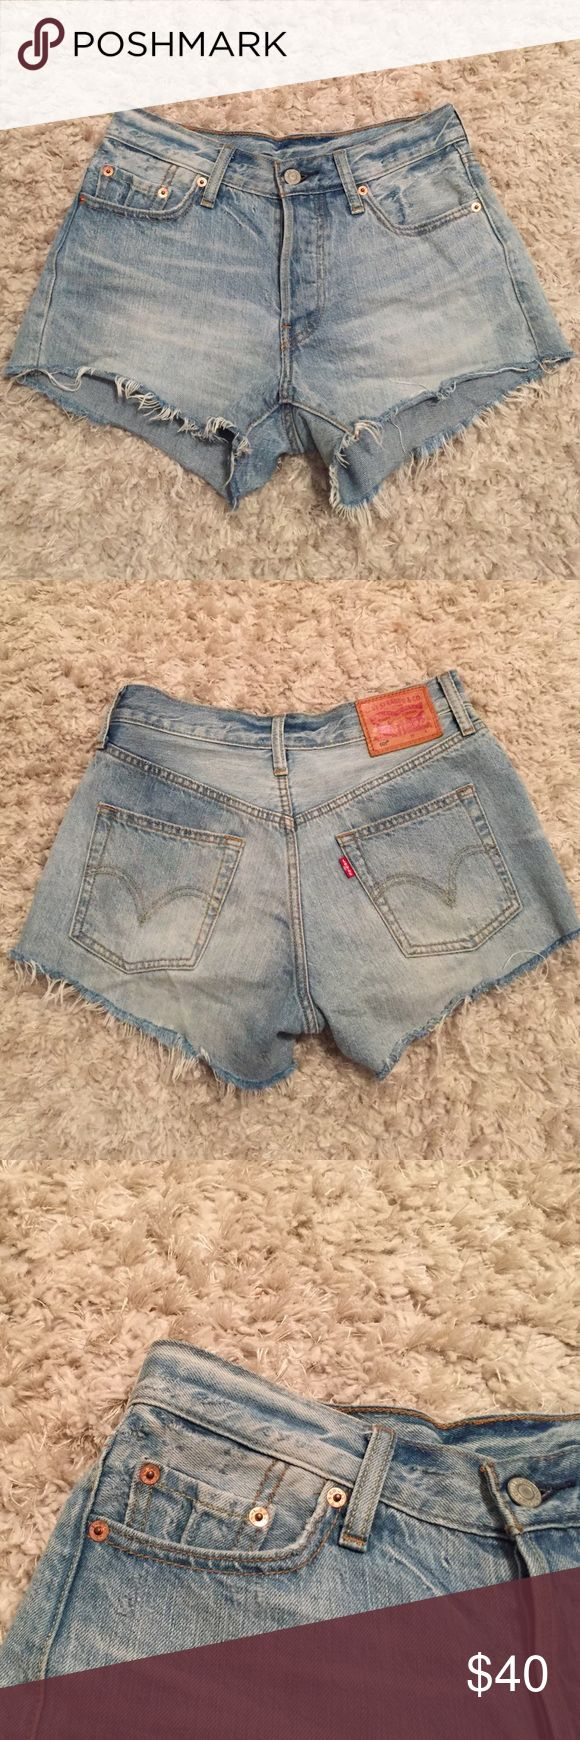 LEVI'S high-rise denim shorts. GREAT condition. They're to small so they must go. No zip, instead 4 buttons. Distressed features. Offers welcomed! Levi's Shorts Jean Shorts